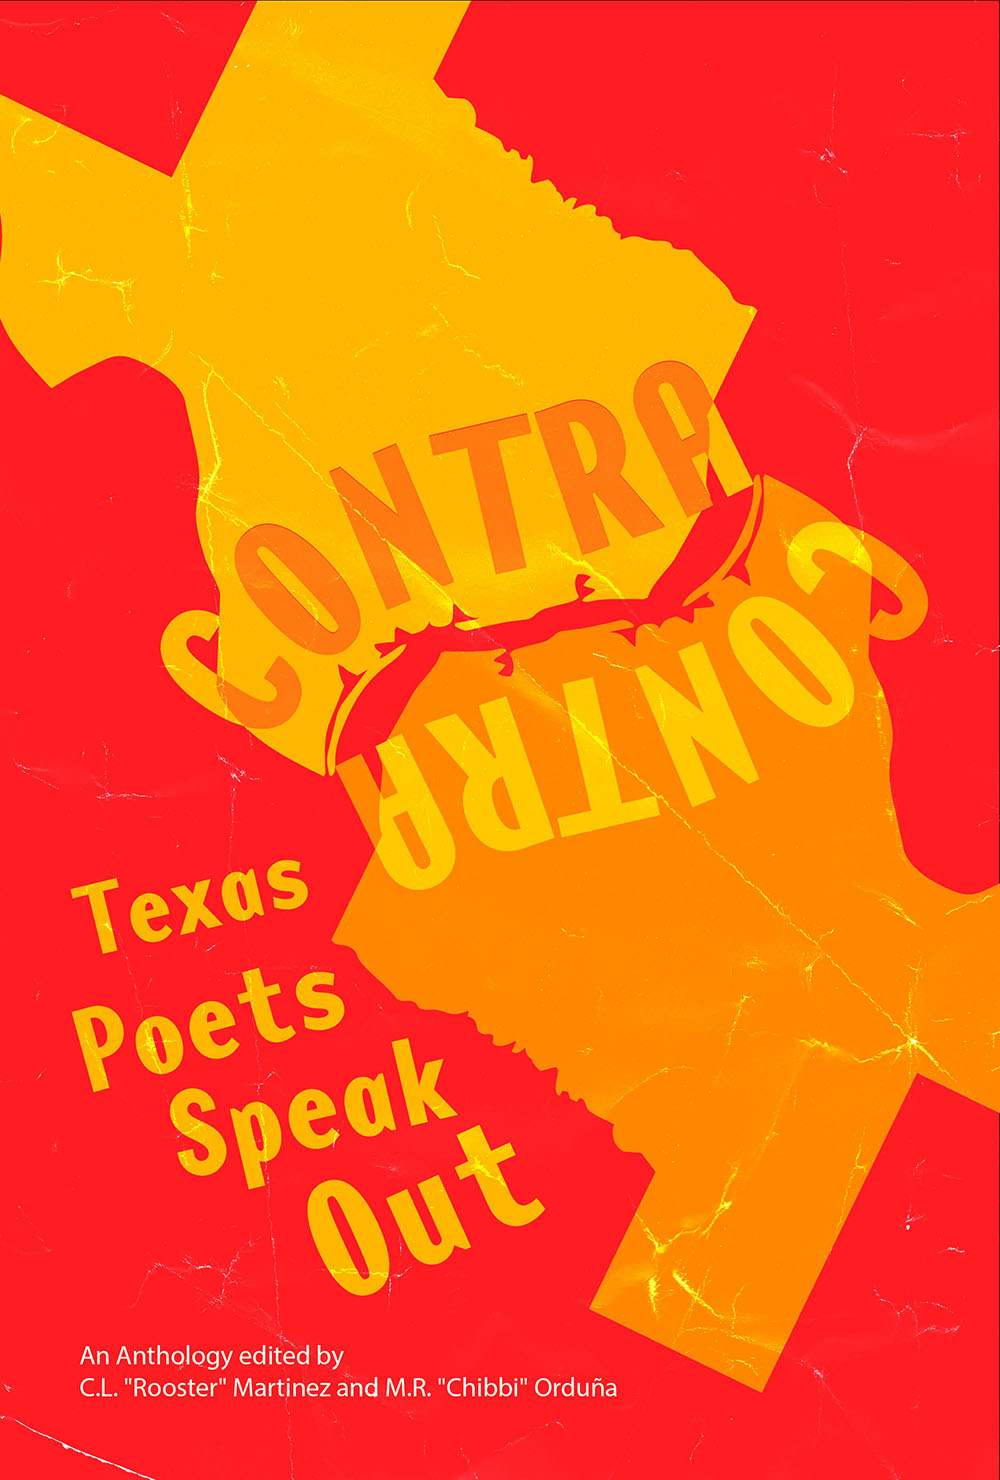 CONTRA: Texas Poets Speak Out